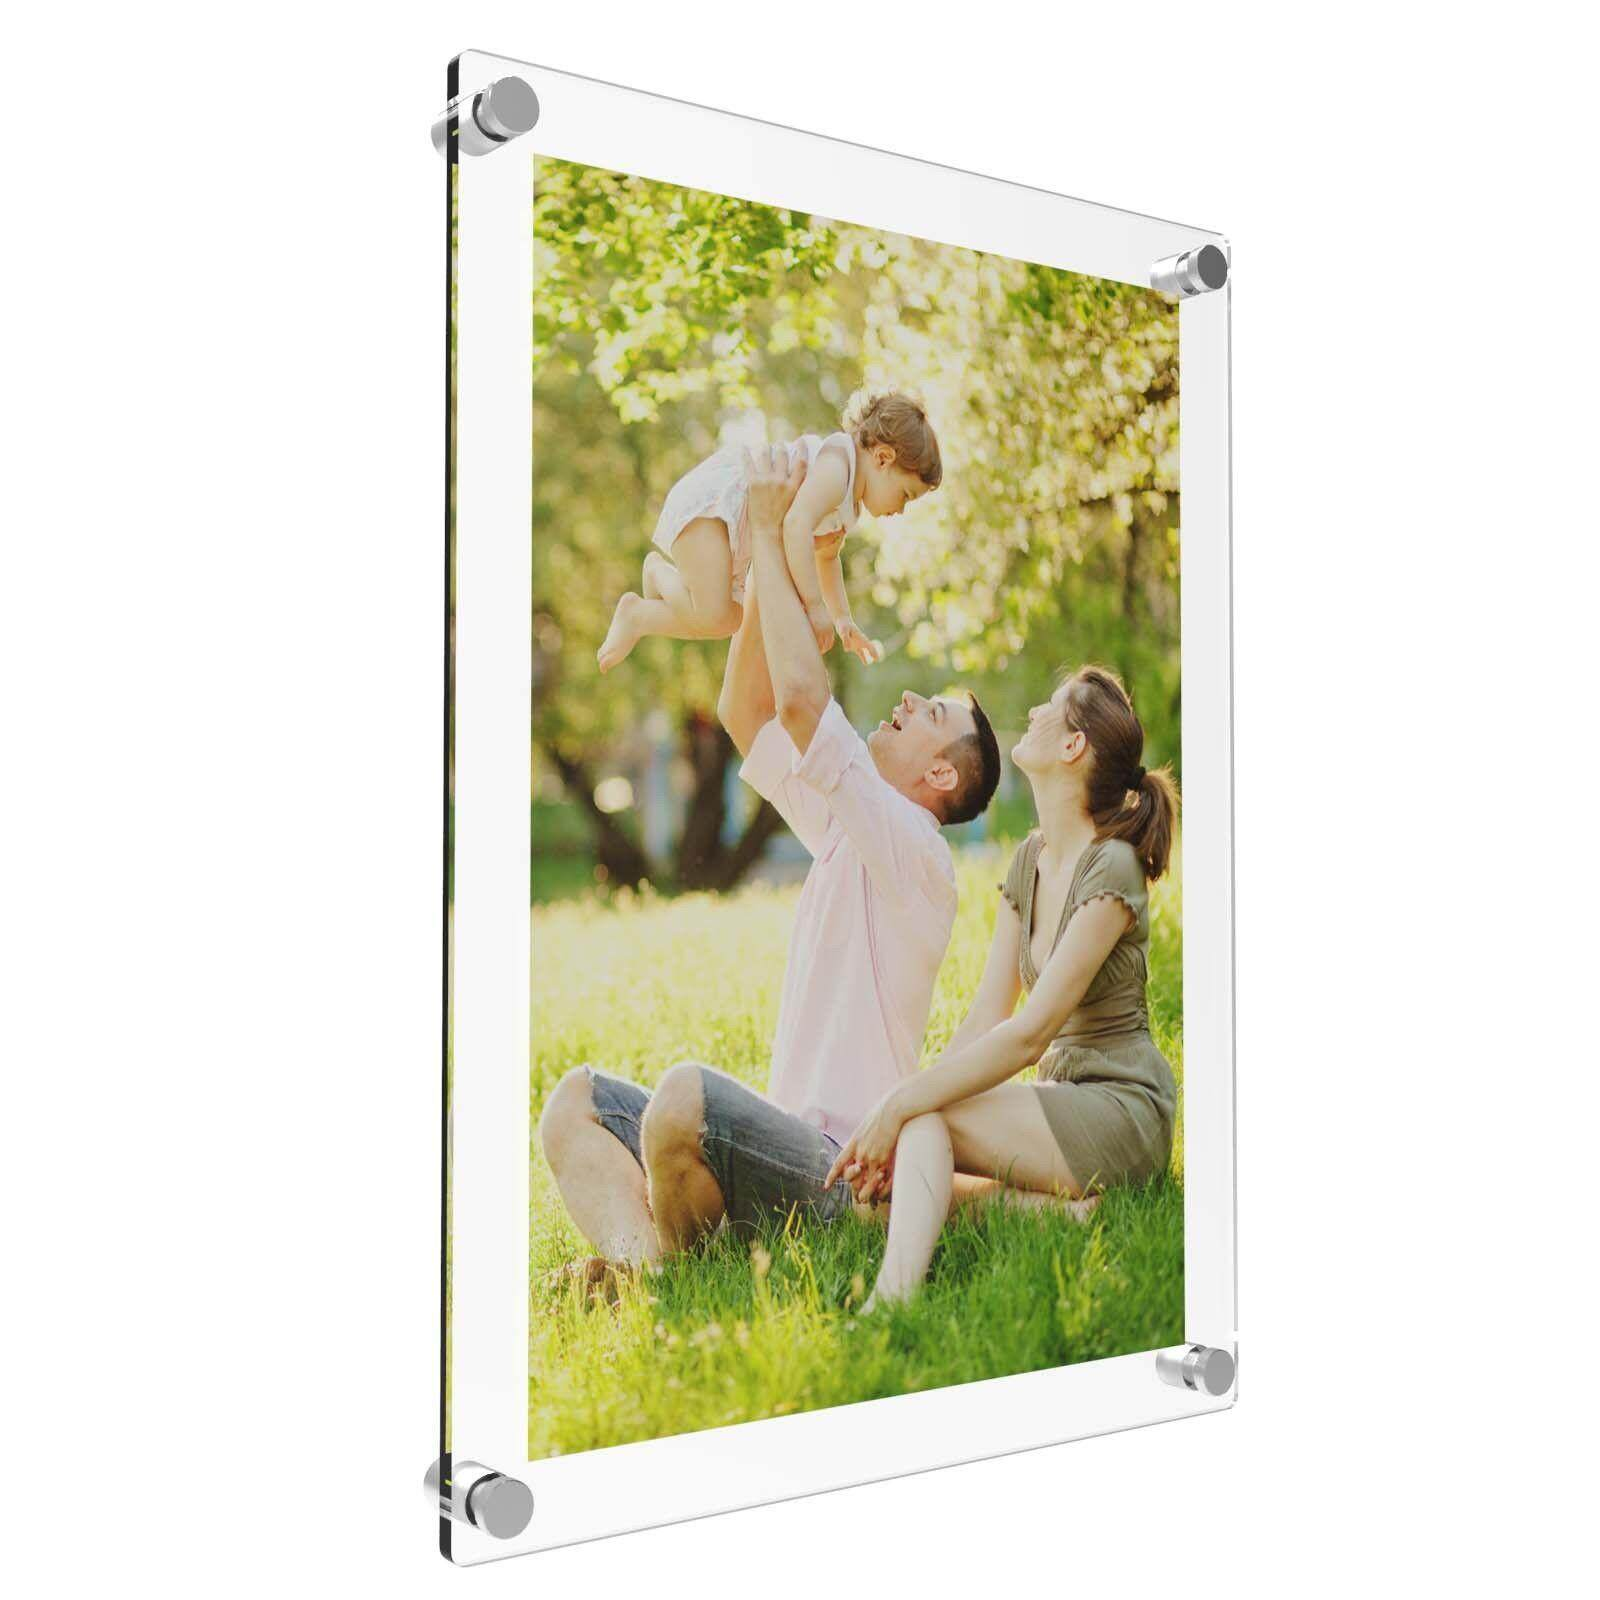 Acrylic Photo Frame Poster Wall Picture Holder Perspex Clear Display A4 - intl